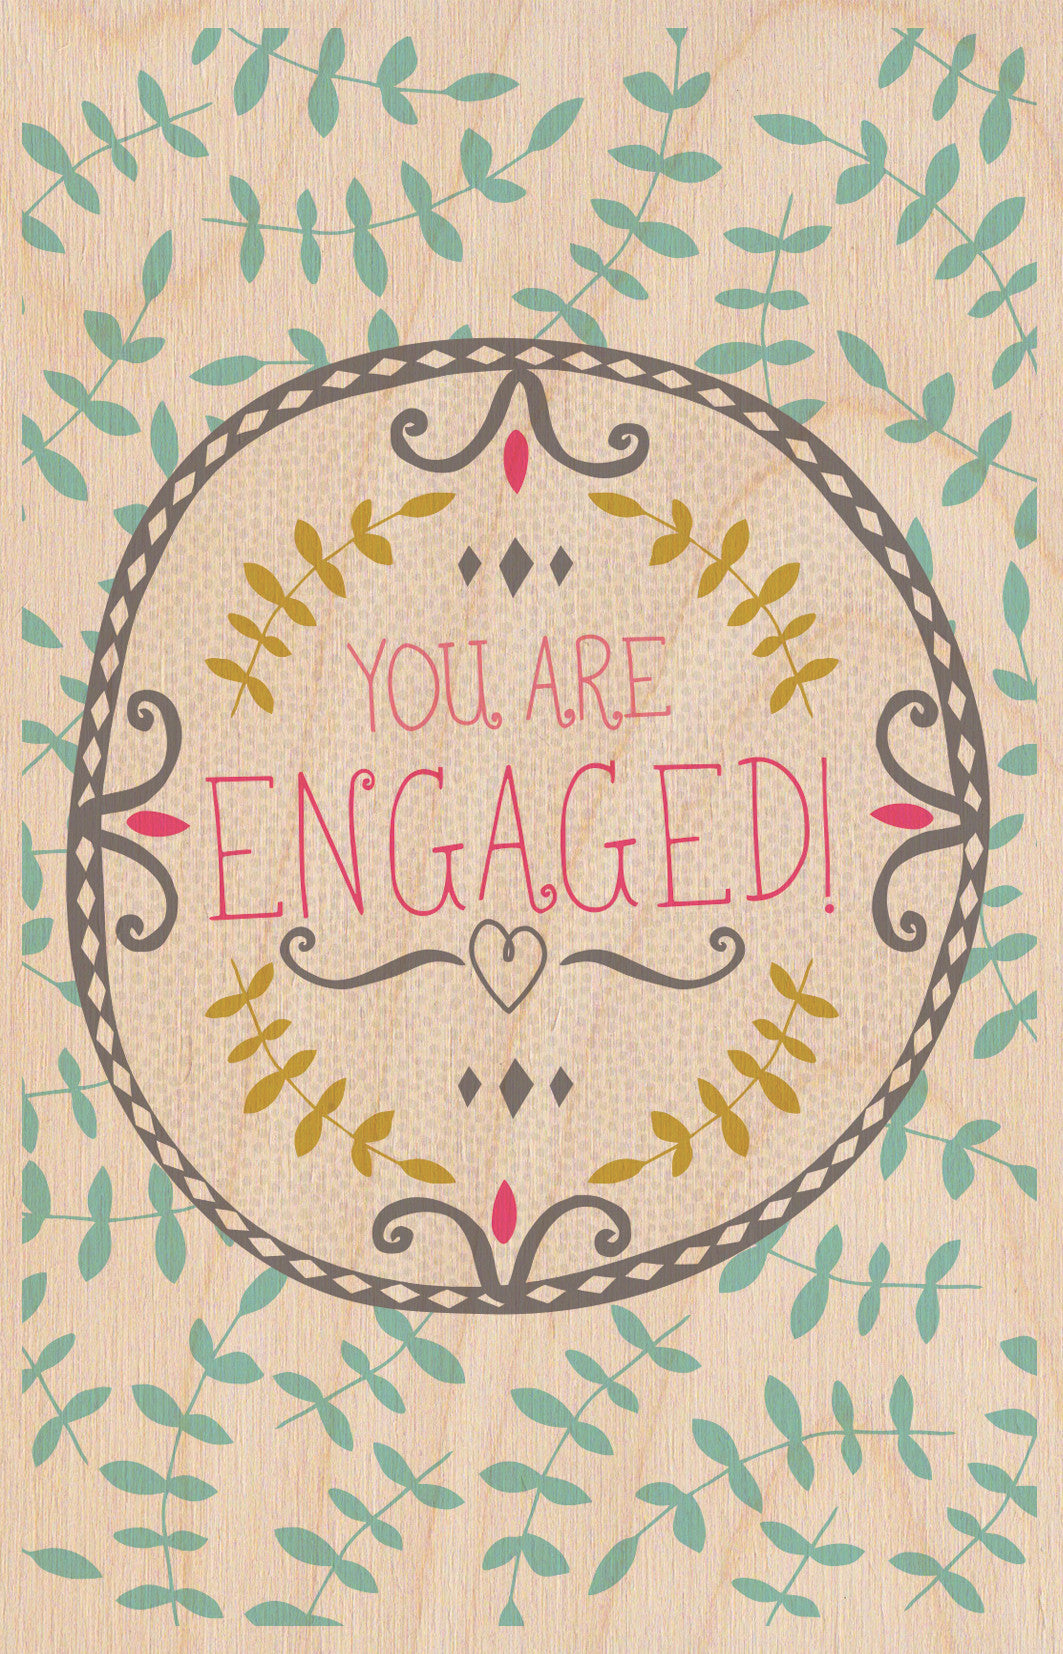 You Are Engaged Wooden Postcard Greeting Card - The Love Trees